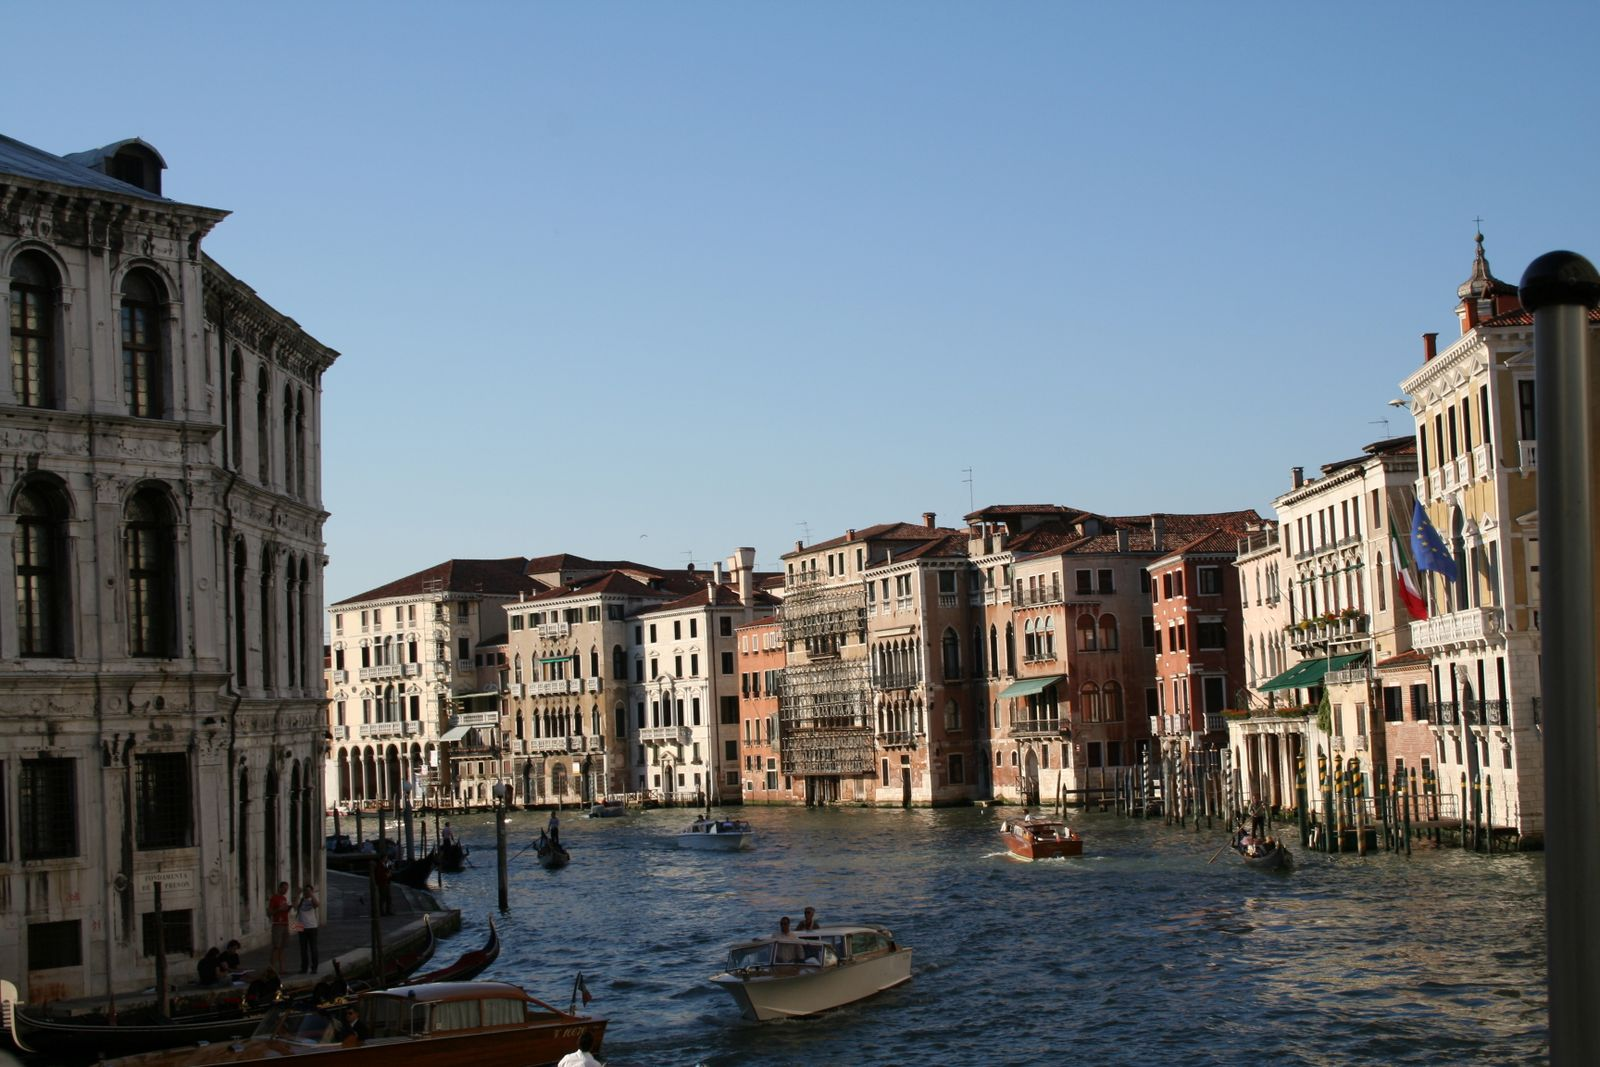 A canal from the iconic town of Venice, Italy